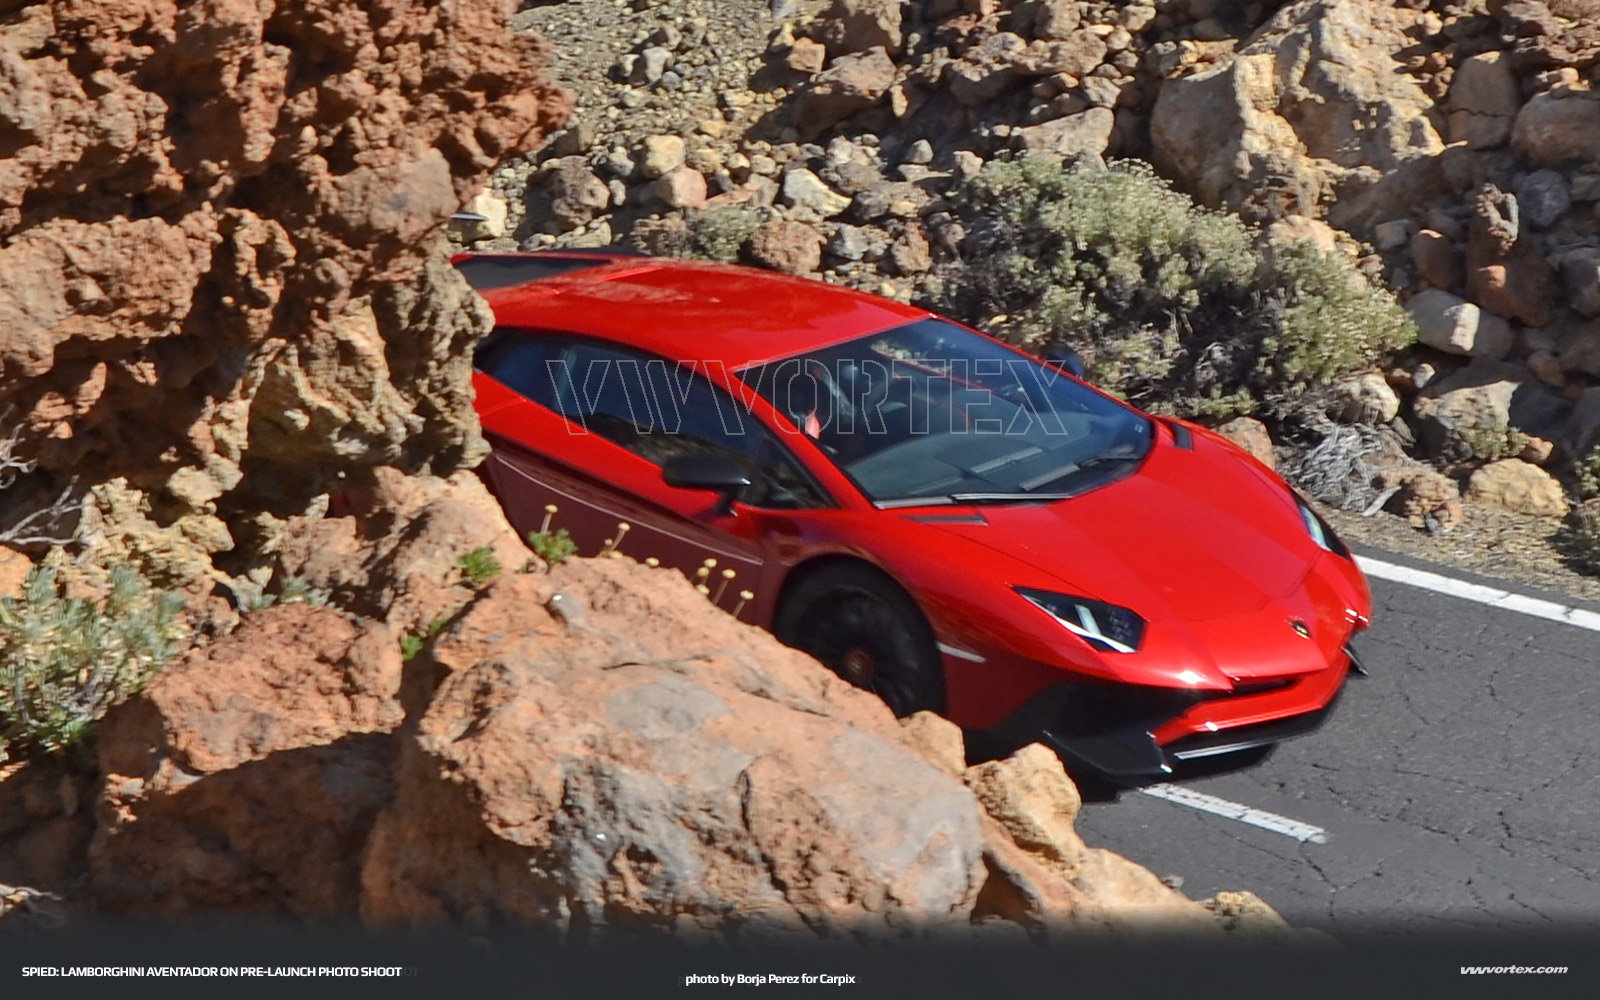 Lamborghini Aventador SV spy photo 3271 110x60